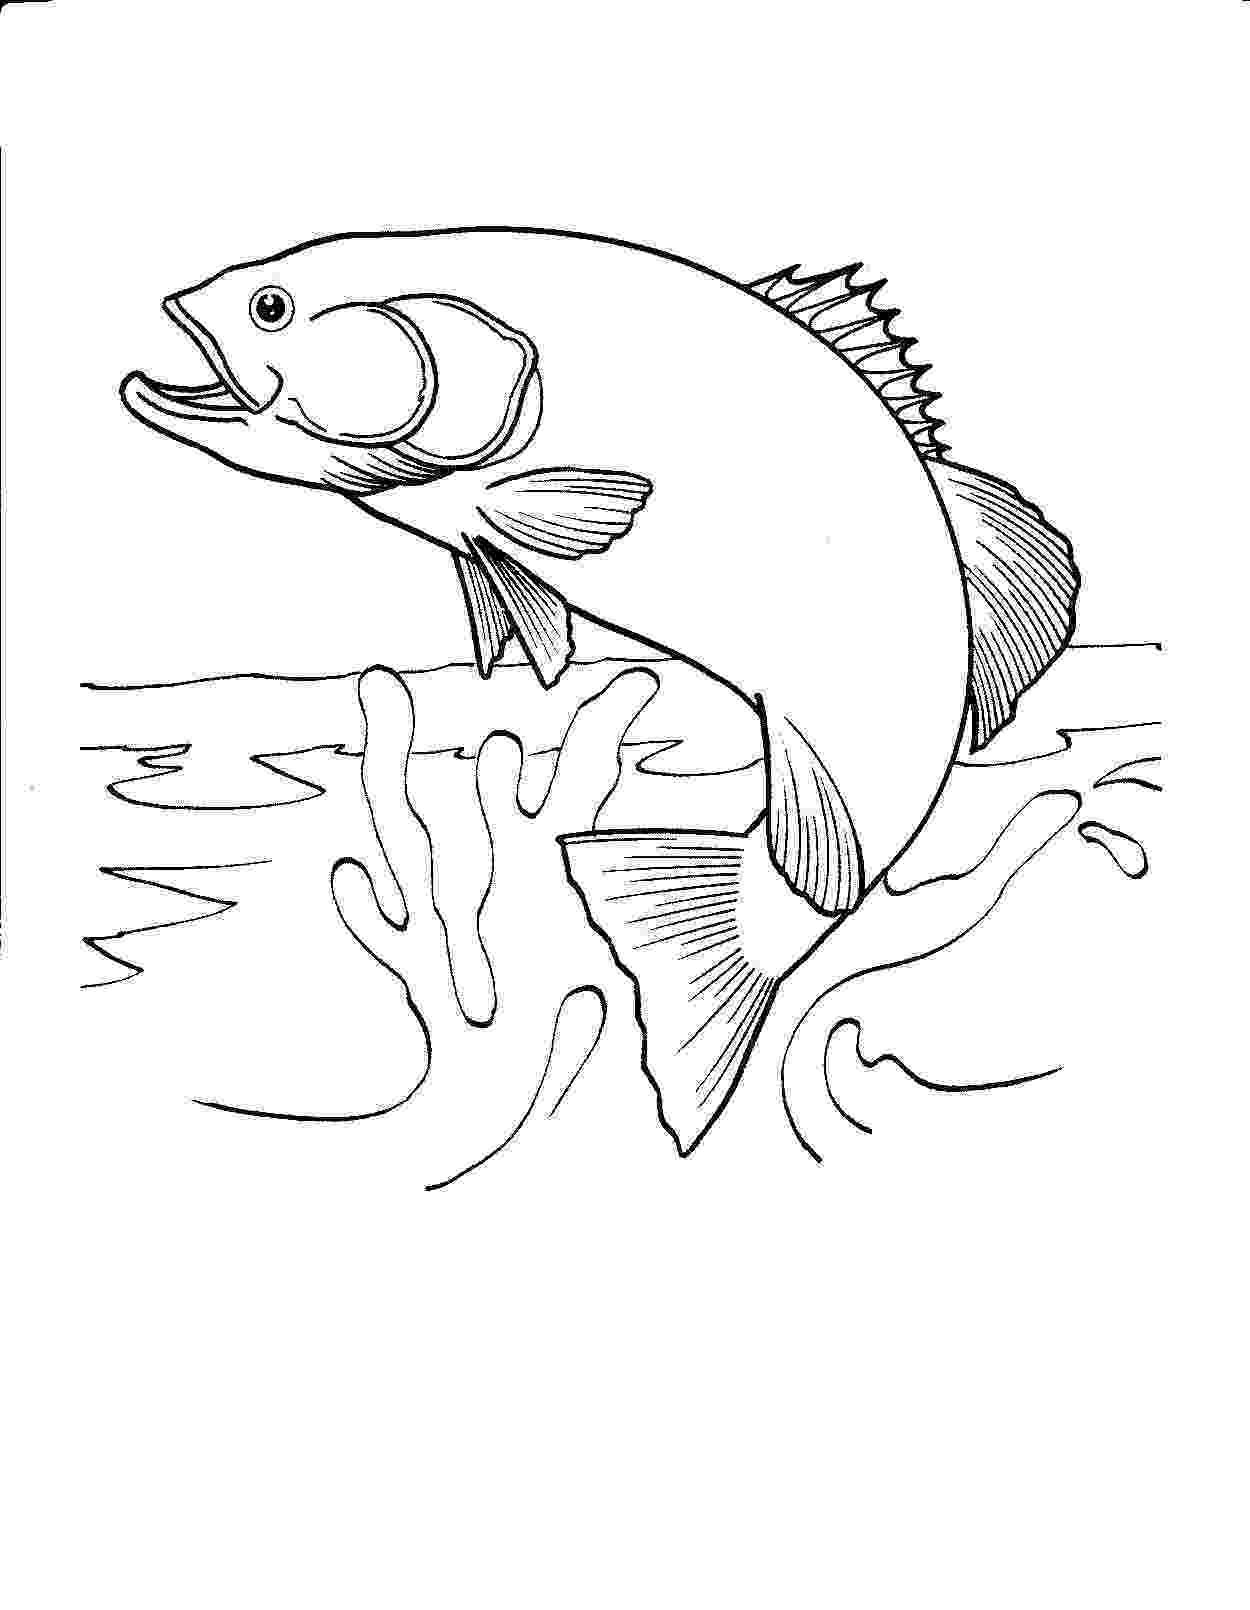 fish picture to color printable fish coloring pages free printable fish fish picture color to